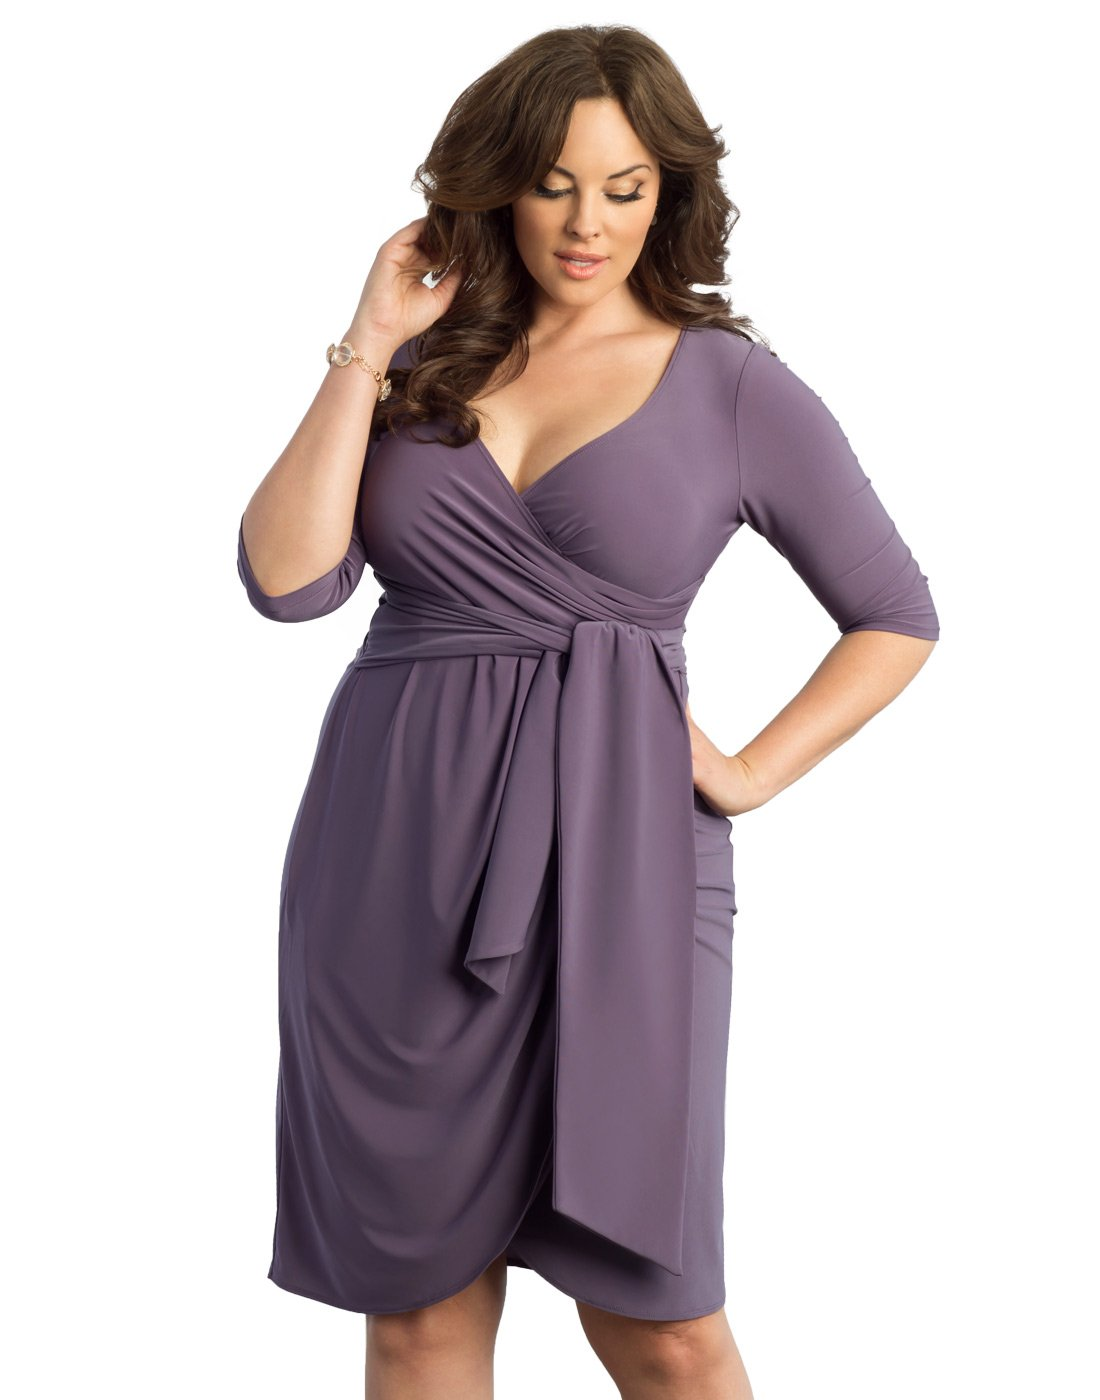 ebb78b331797 Kiyonna Women's Plus Size Harlow Faux Wrap Dress 2X Lavender Fields.  Home/Brands/Kiyonna Dresses/Kiyonna Women's Plus Size Harlow Faux Wrap ...